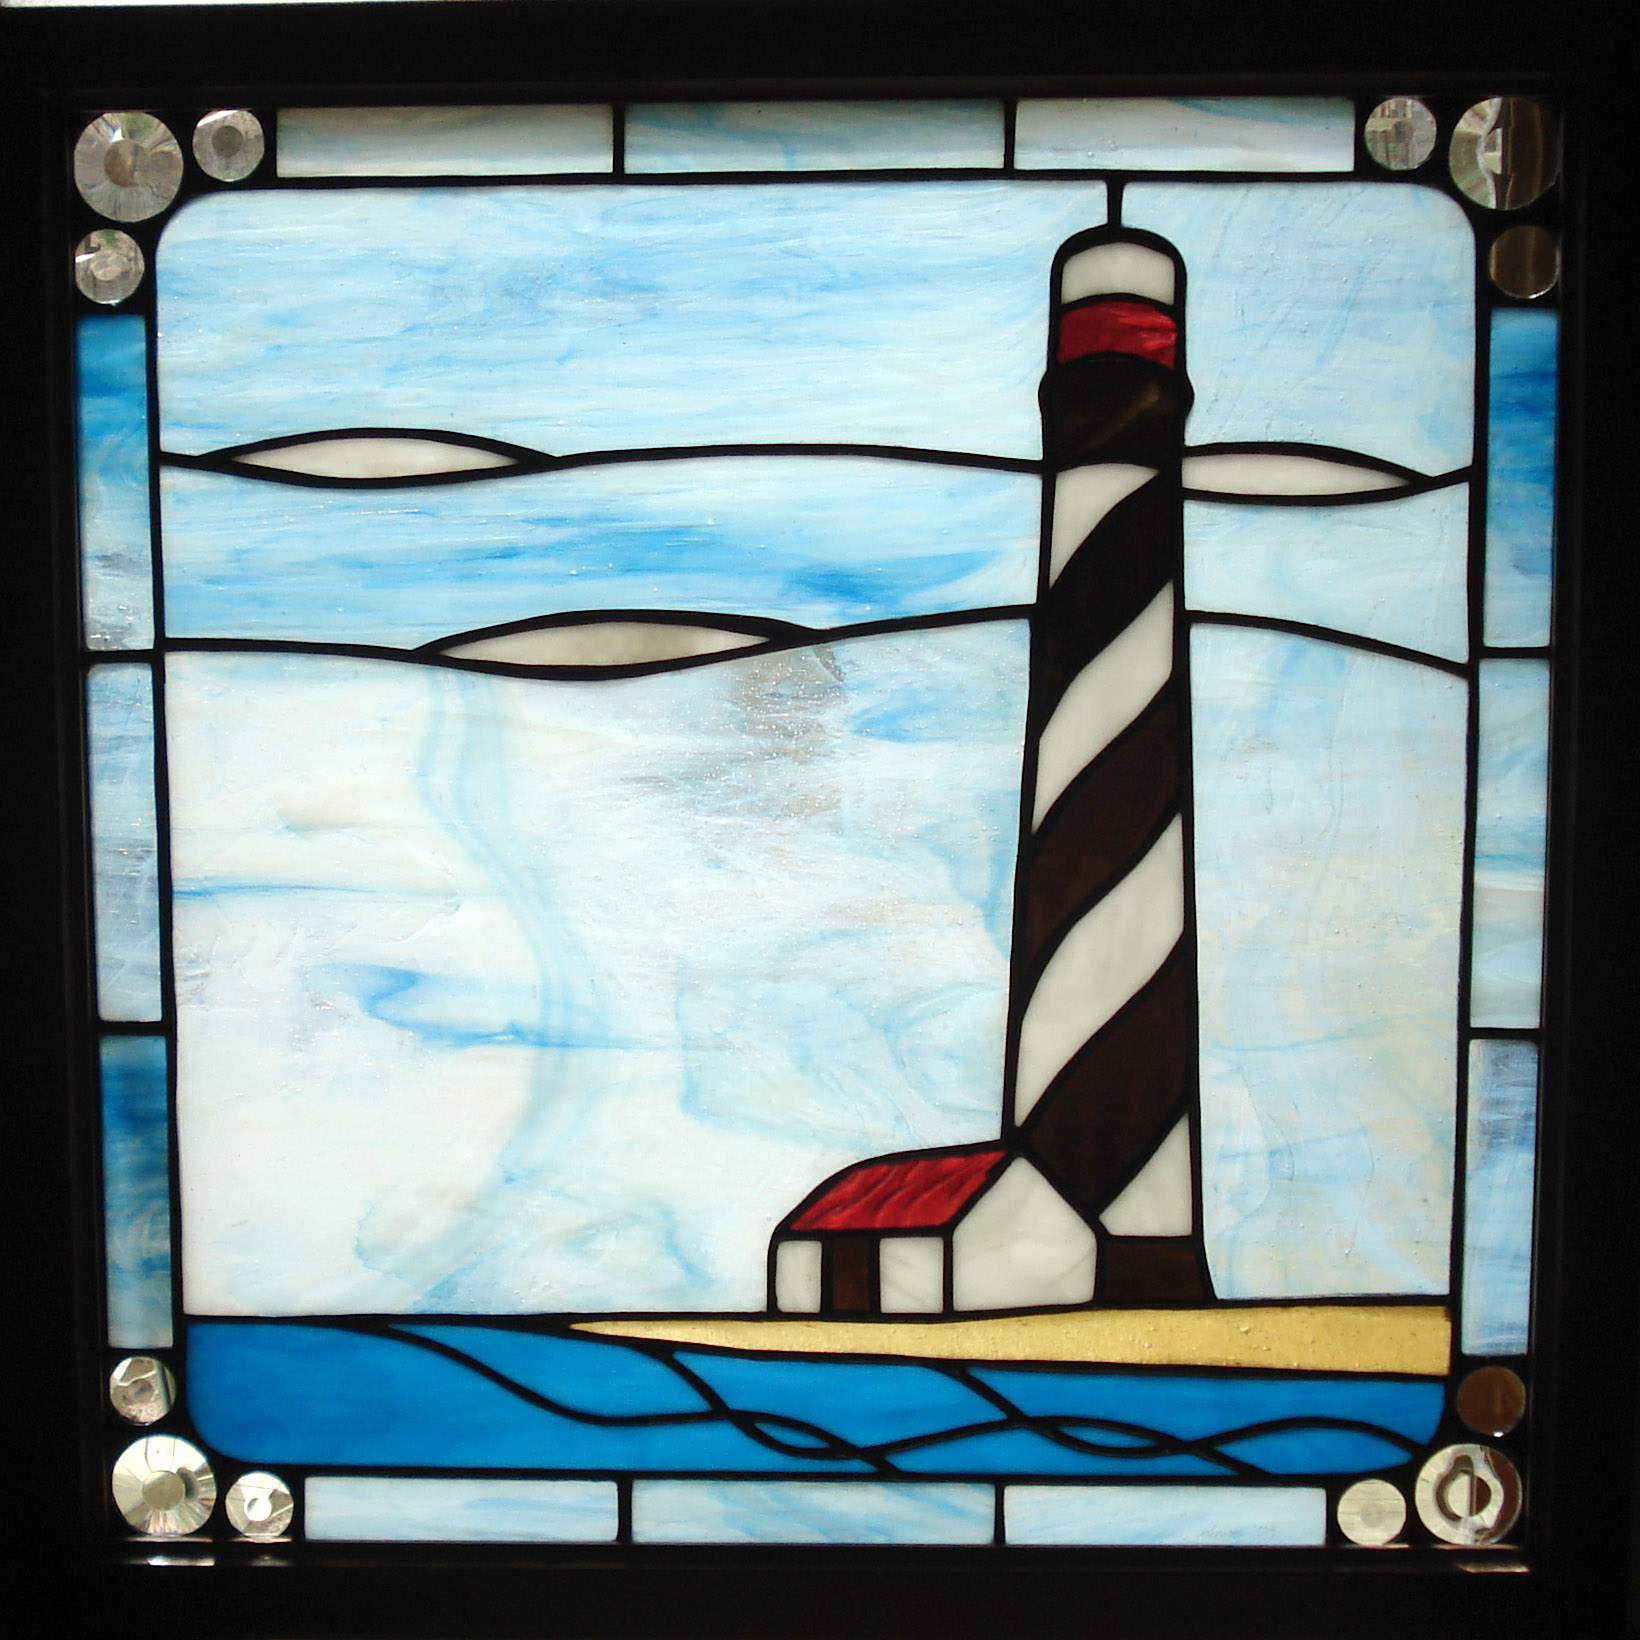 Lighthouse Stained Glass - Home & Garden - Compare Prices, Reviews